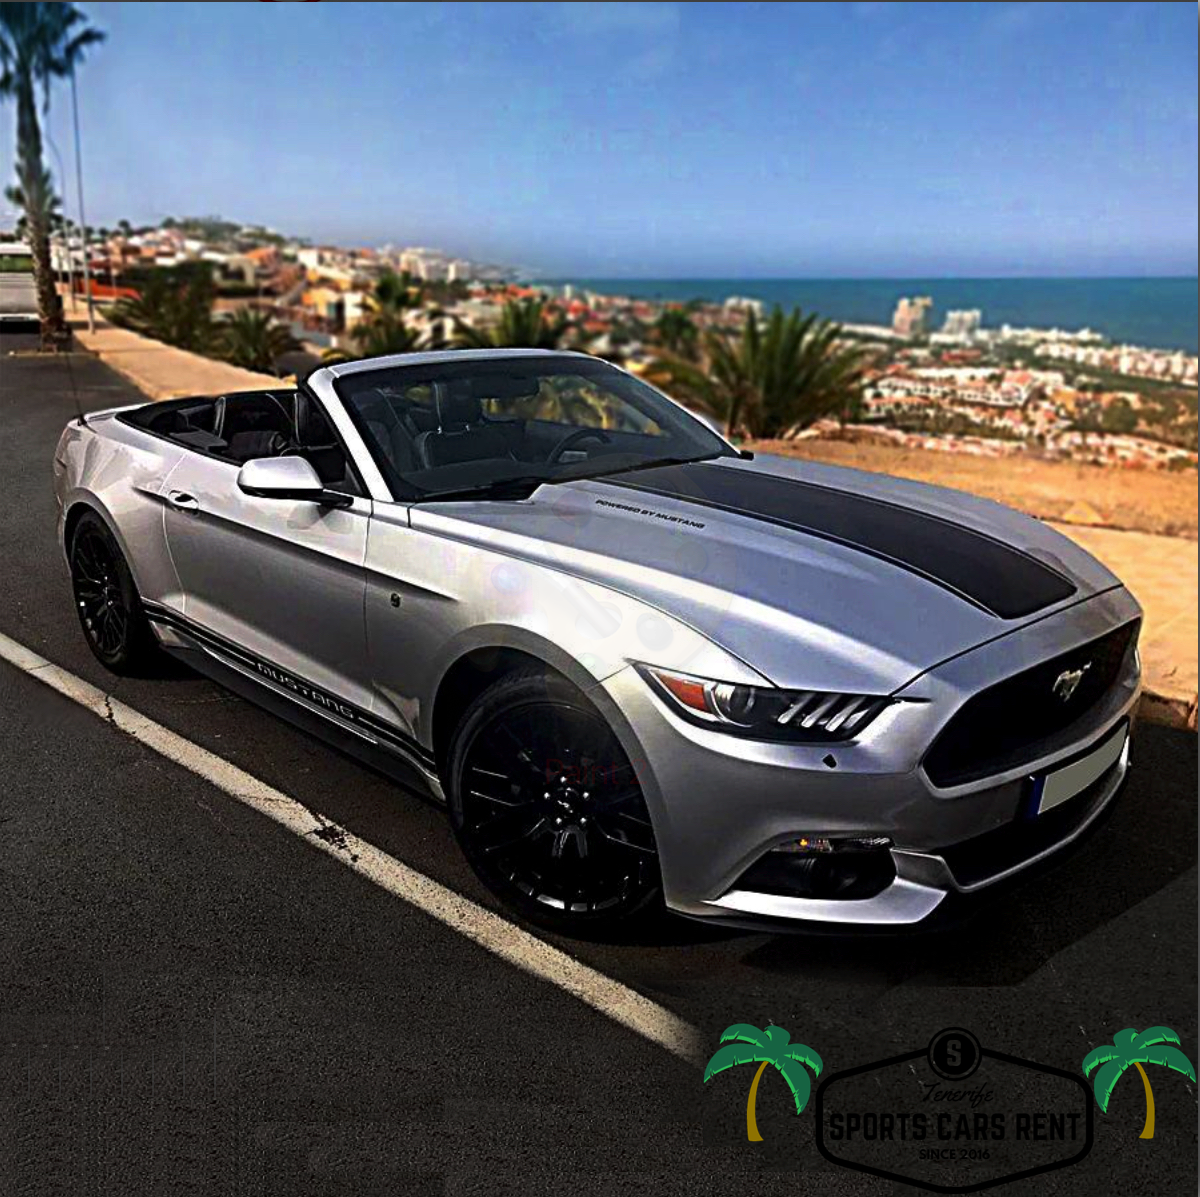 Ford Mustang Silver AUTOMATIC TENERIFE SPORTS CARS RENT - Automatic sports cars